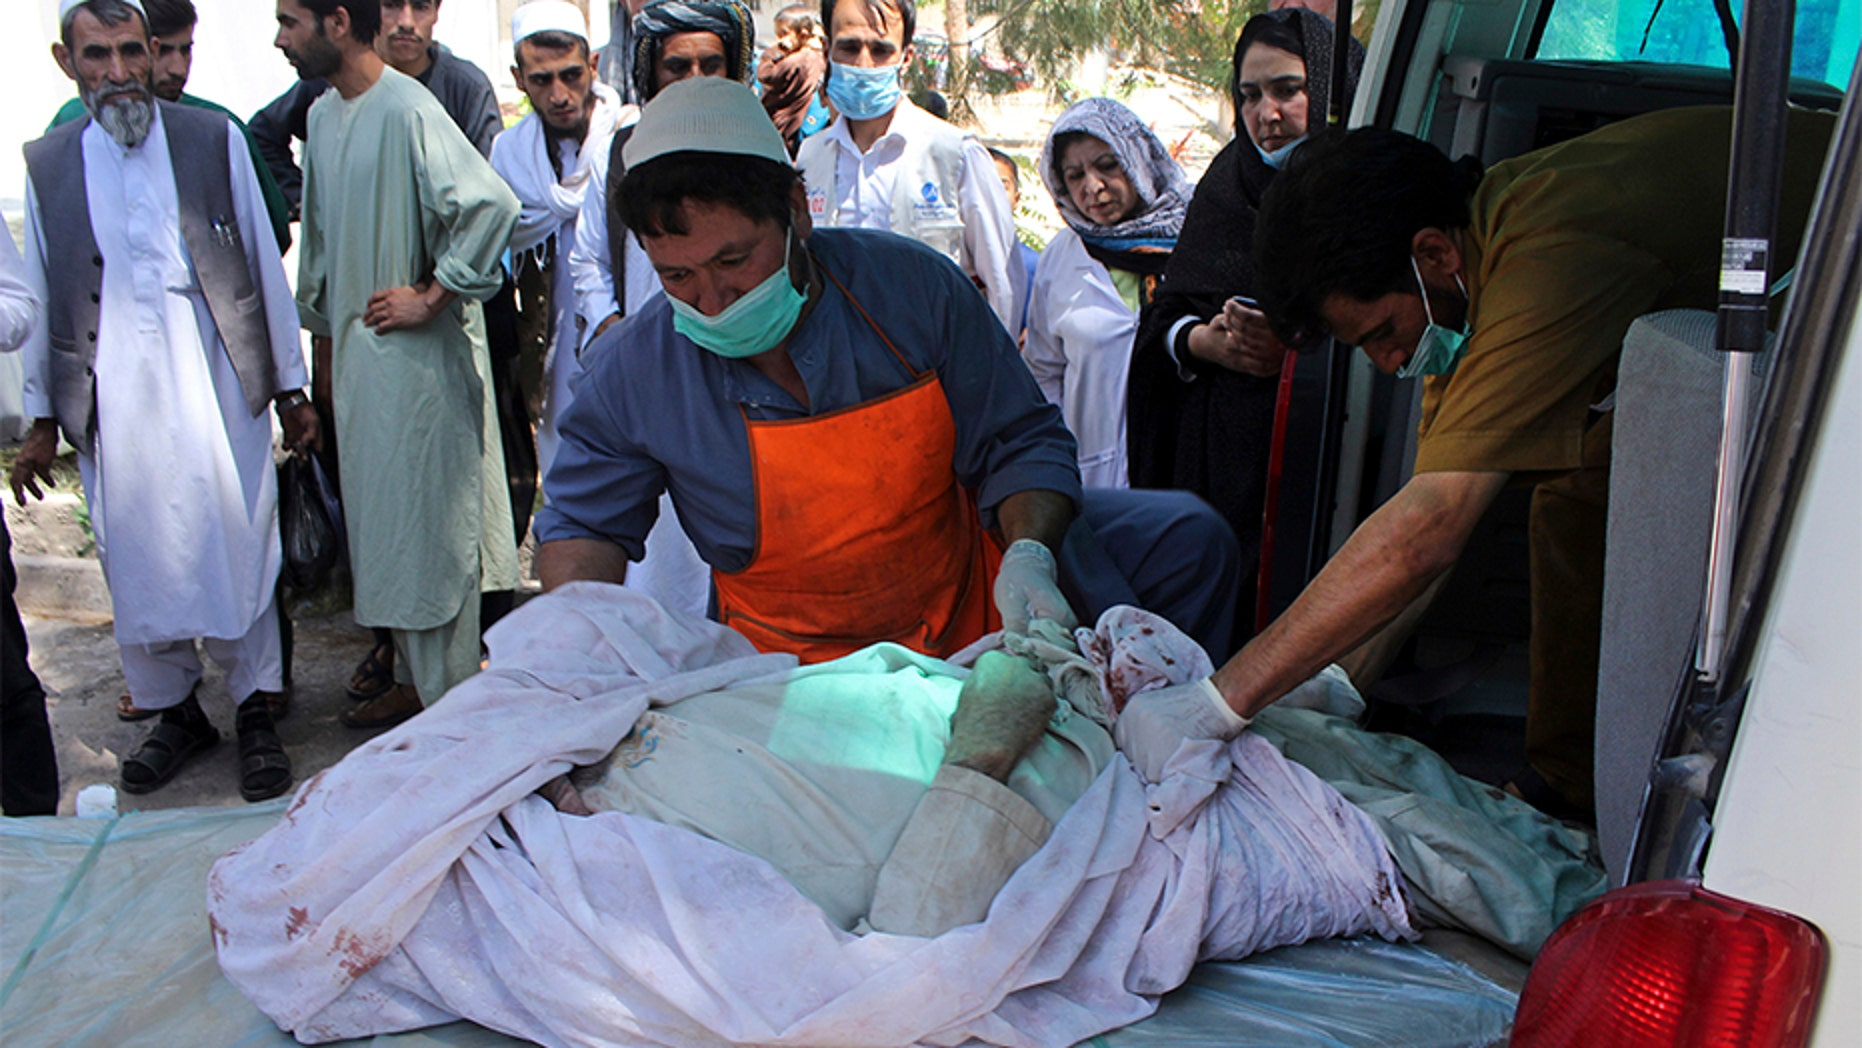 July 31, 2018: Medical personnel transport the body of a bombing victim by ambulance, at a hospital in Herat, Afghanistan.